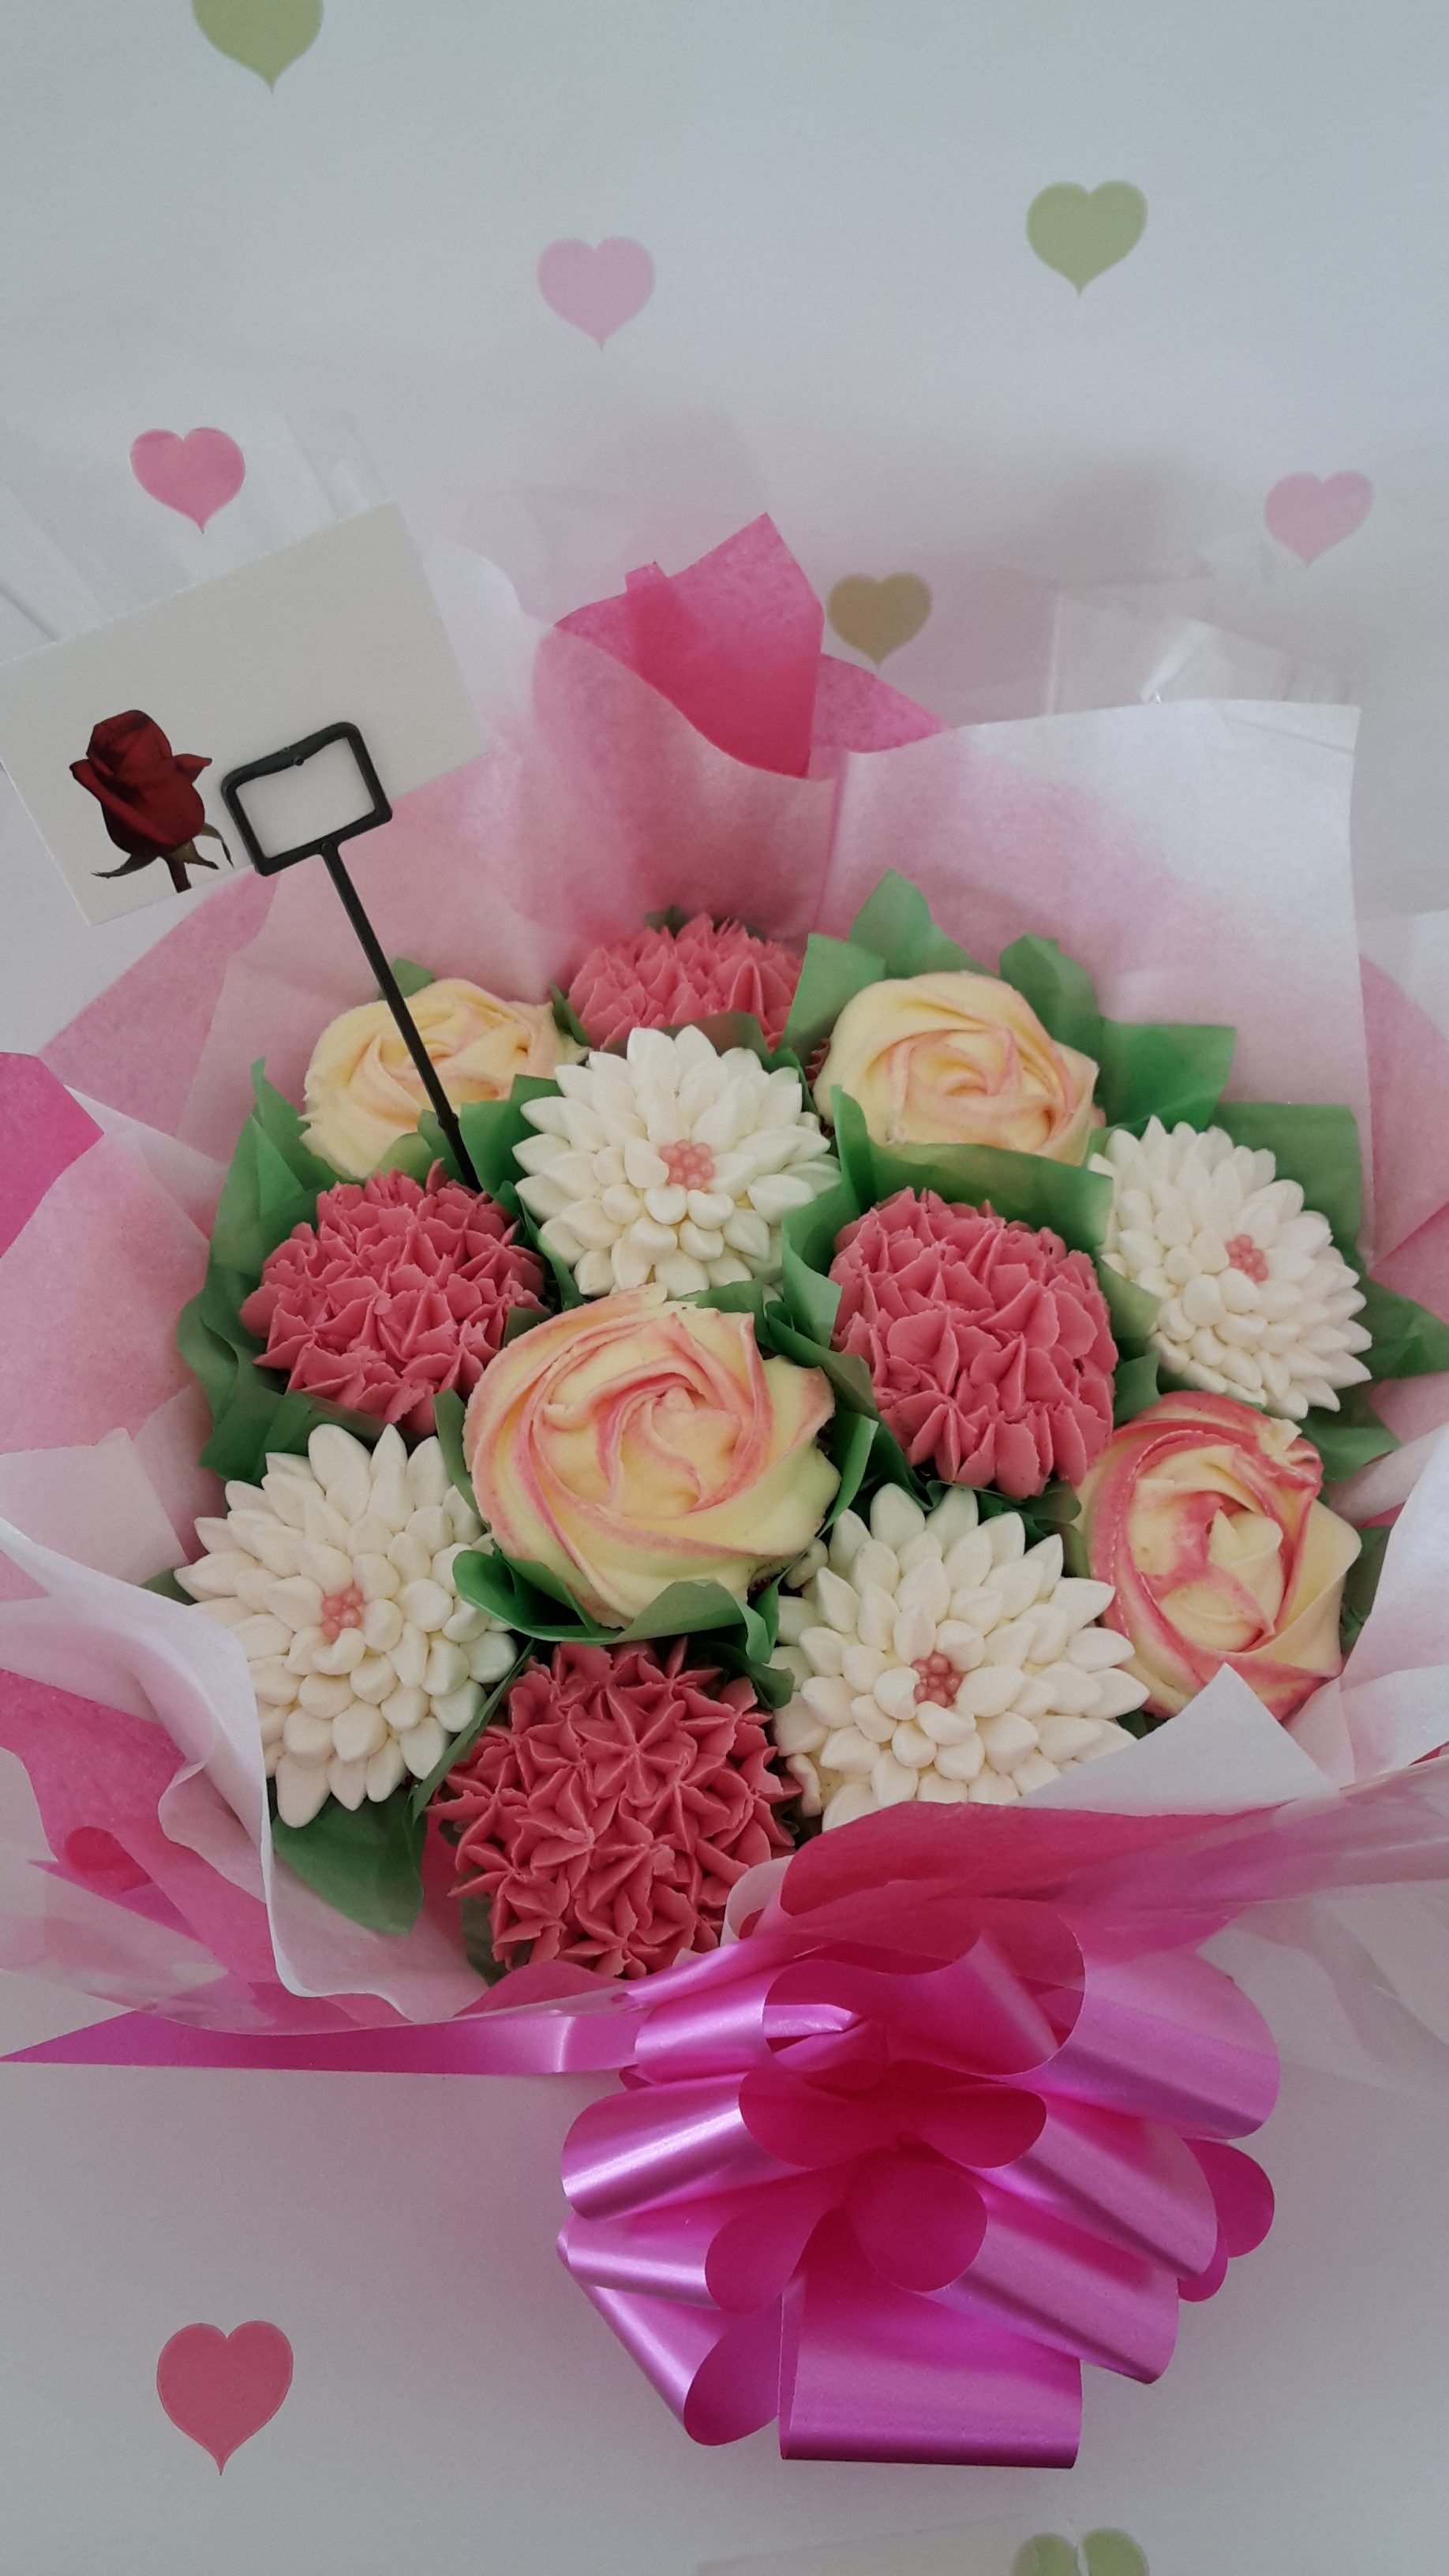 12 Cupcake Bouquet - Candy